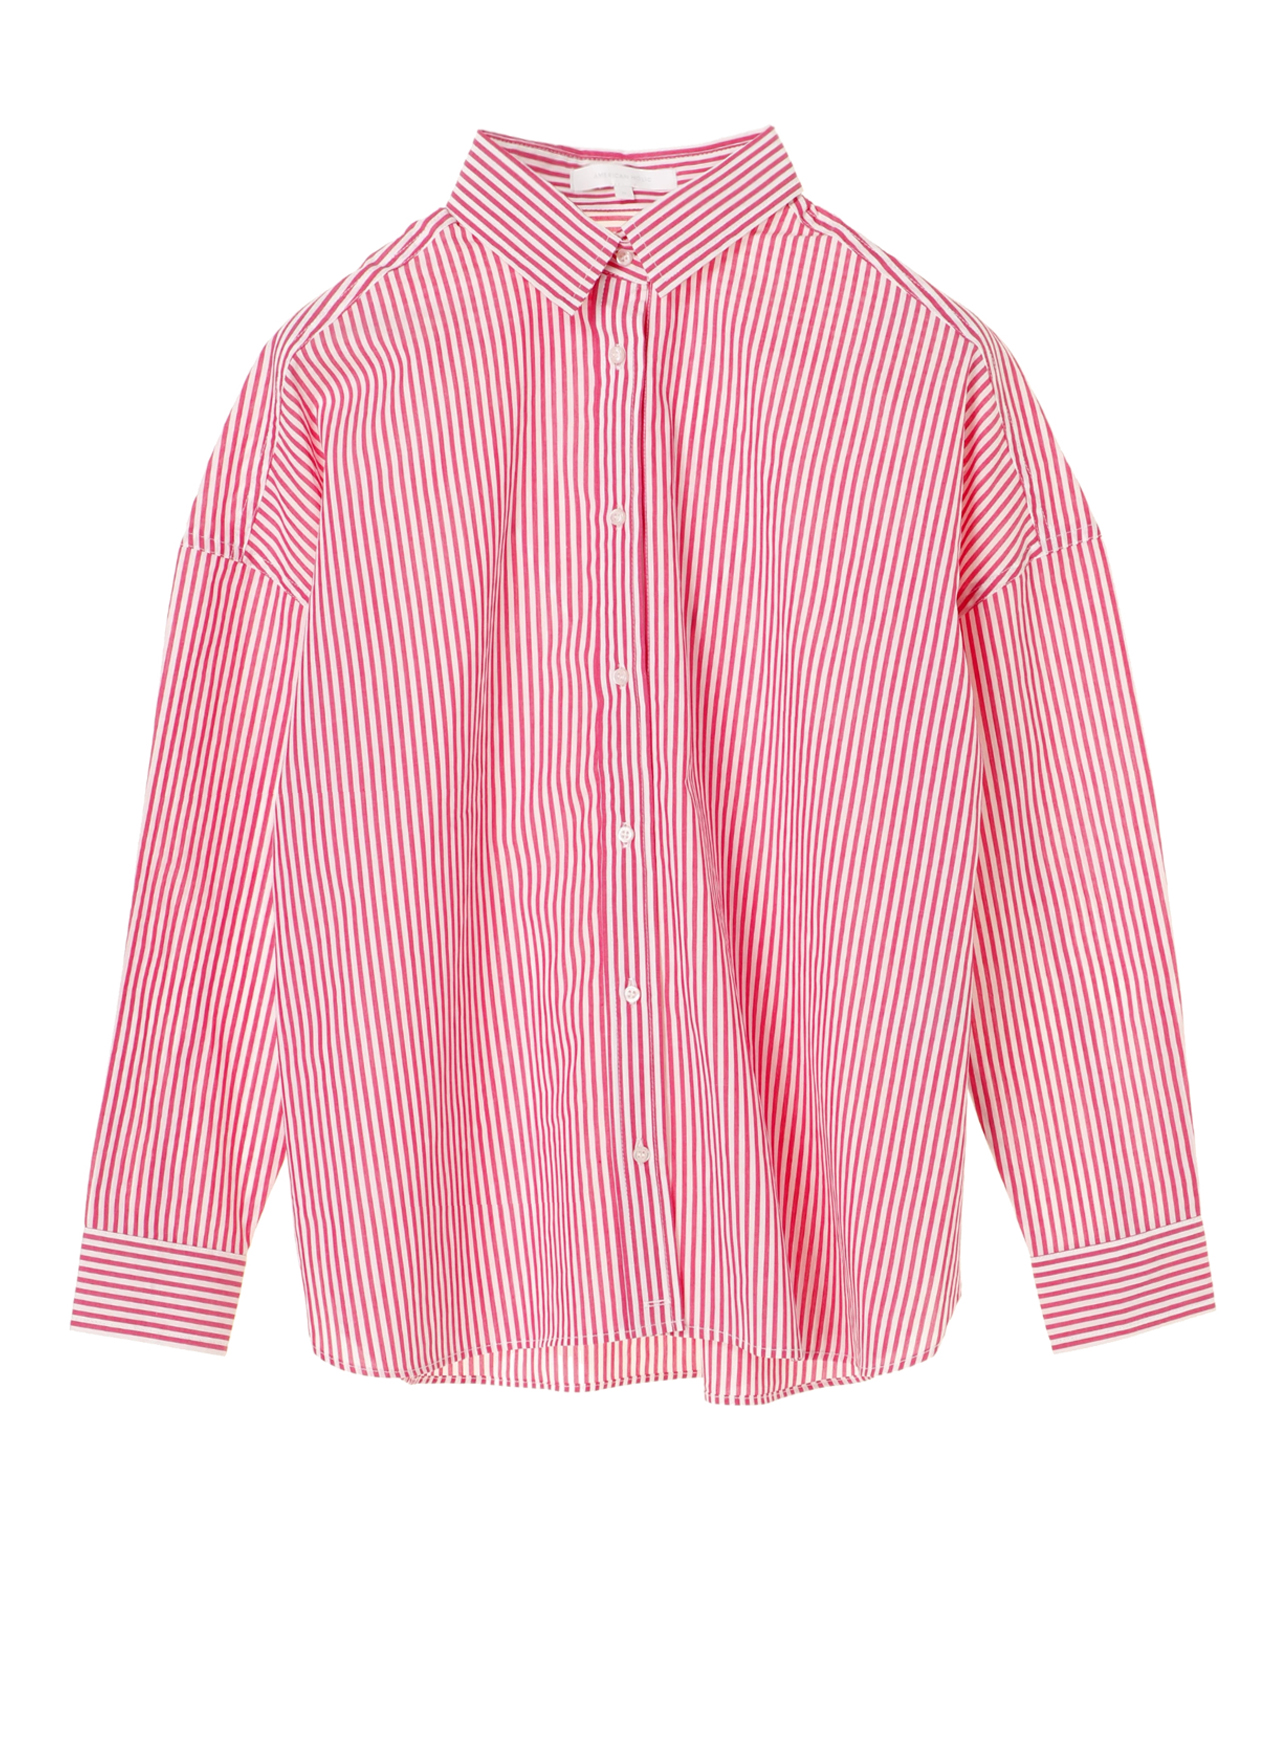 fc54f4d5784d Buy Original American Holic by Stripe Japan Pink Alex Shirt - Dark ...